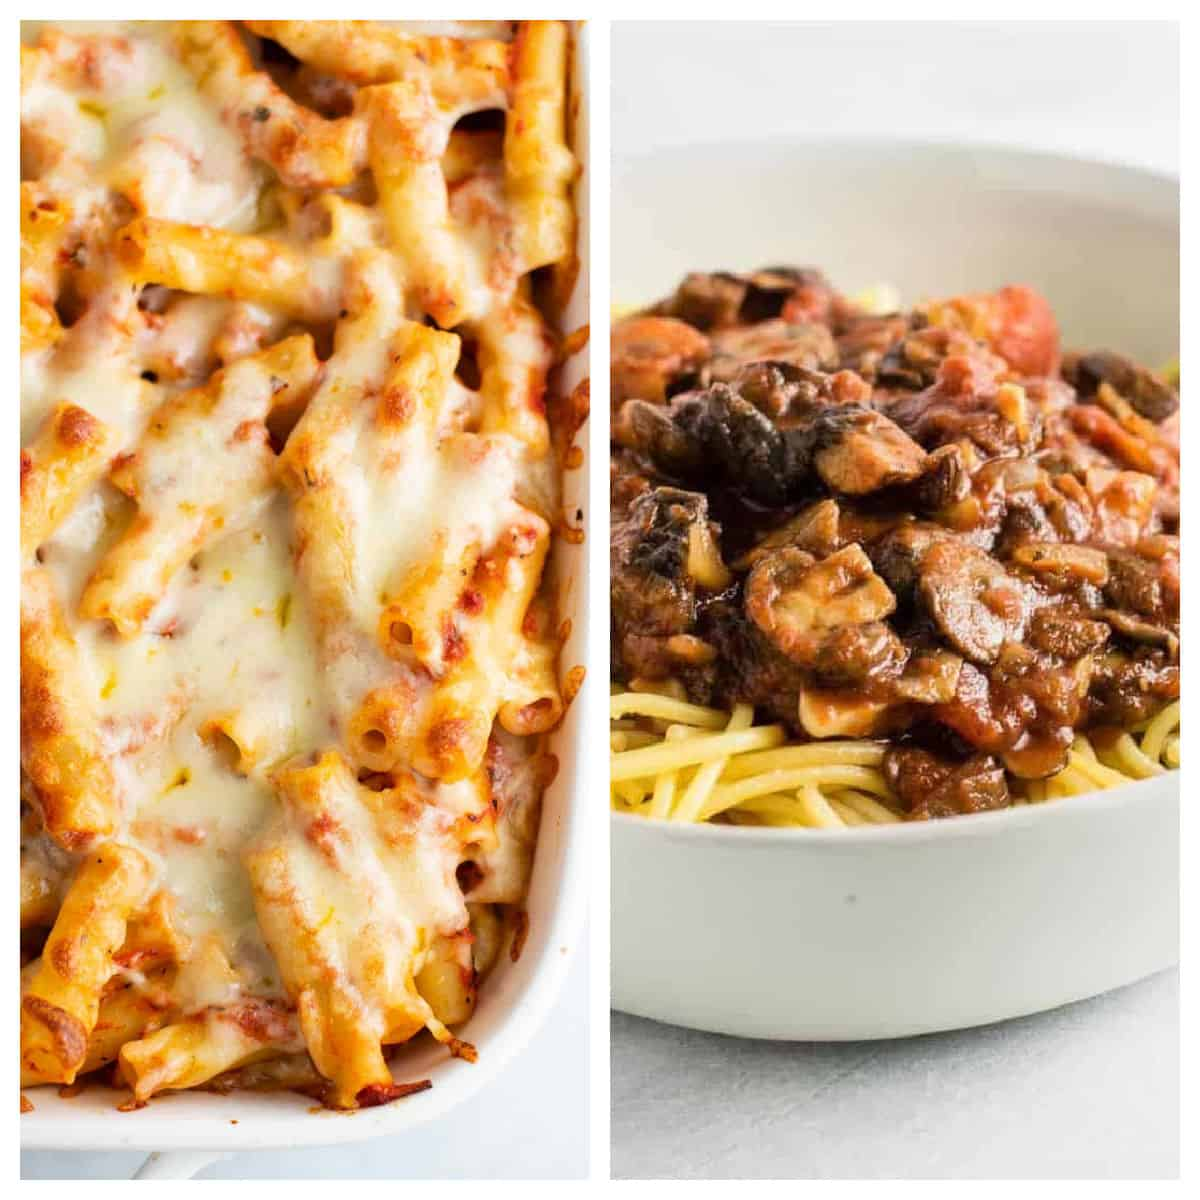 collage image showing vegetarian baked ziti and meatless spaghetti sauce